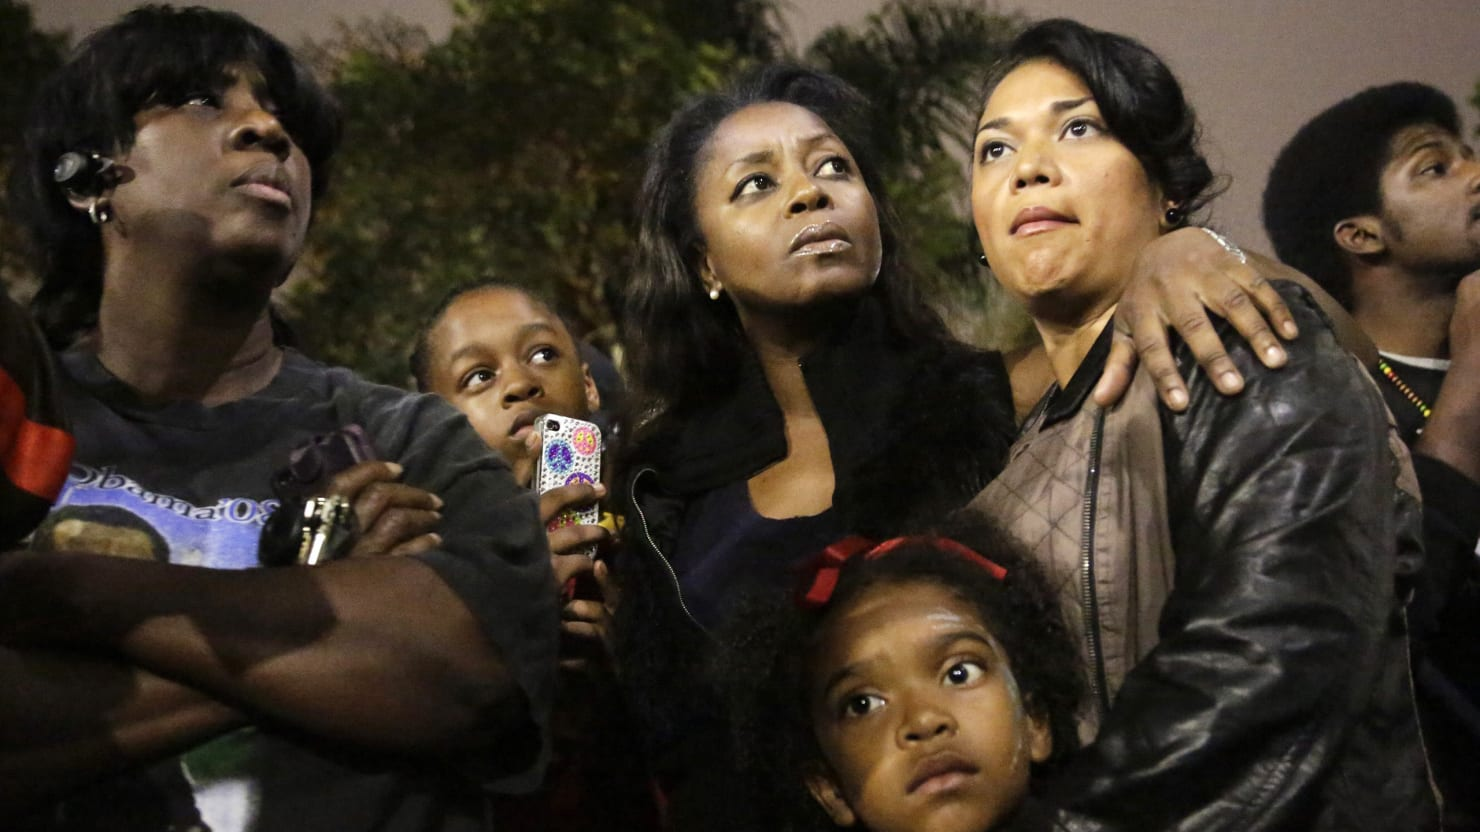 Why Do Black and White Americans See the Zimmerman Verdict So Differently?